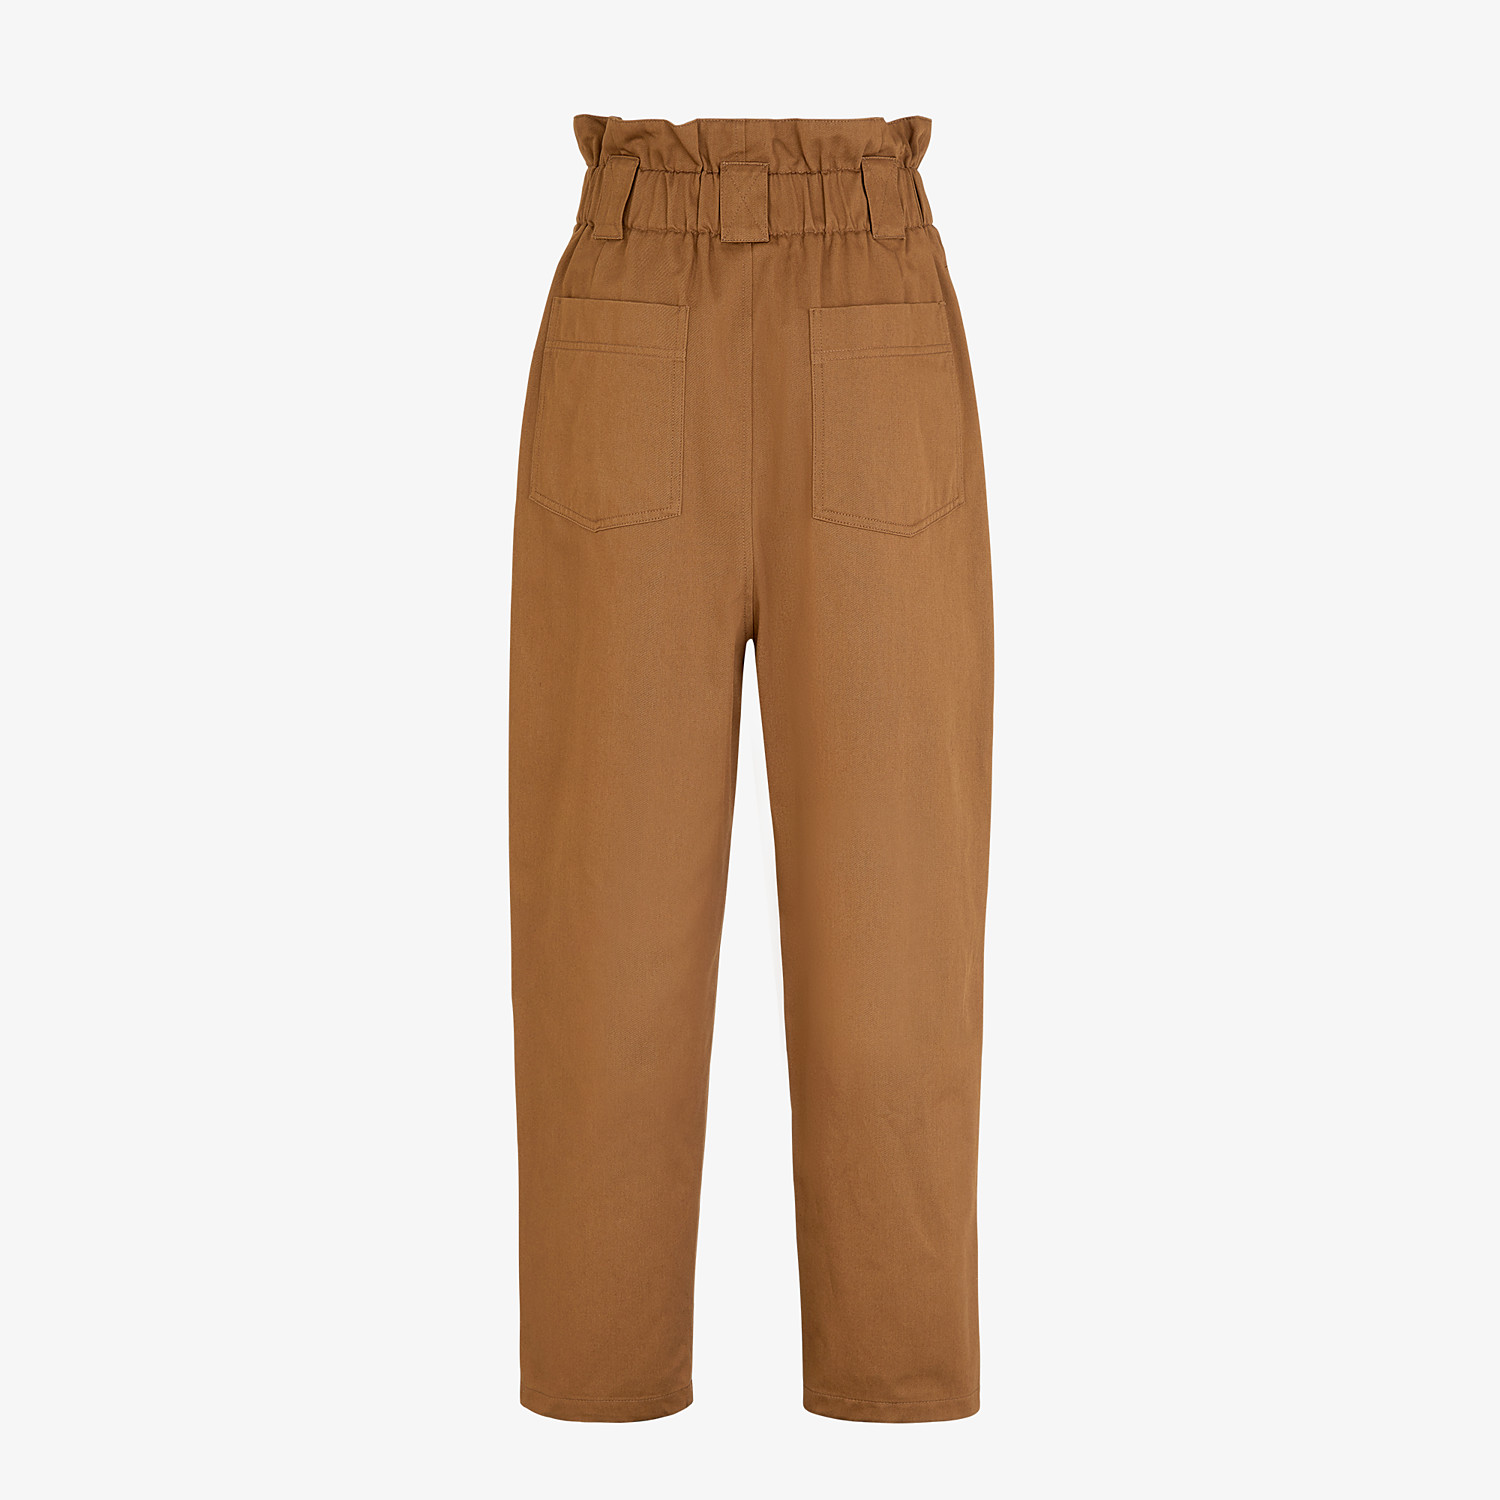 FENDI TROUSERS - Brown gabardine trousers - view 2 detail